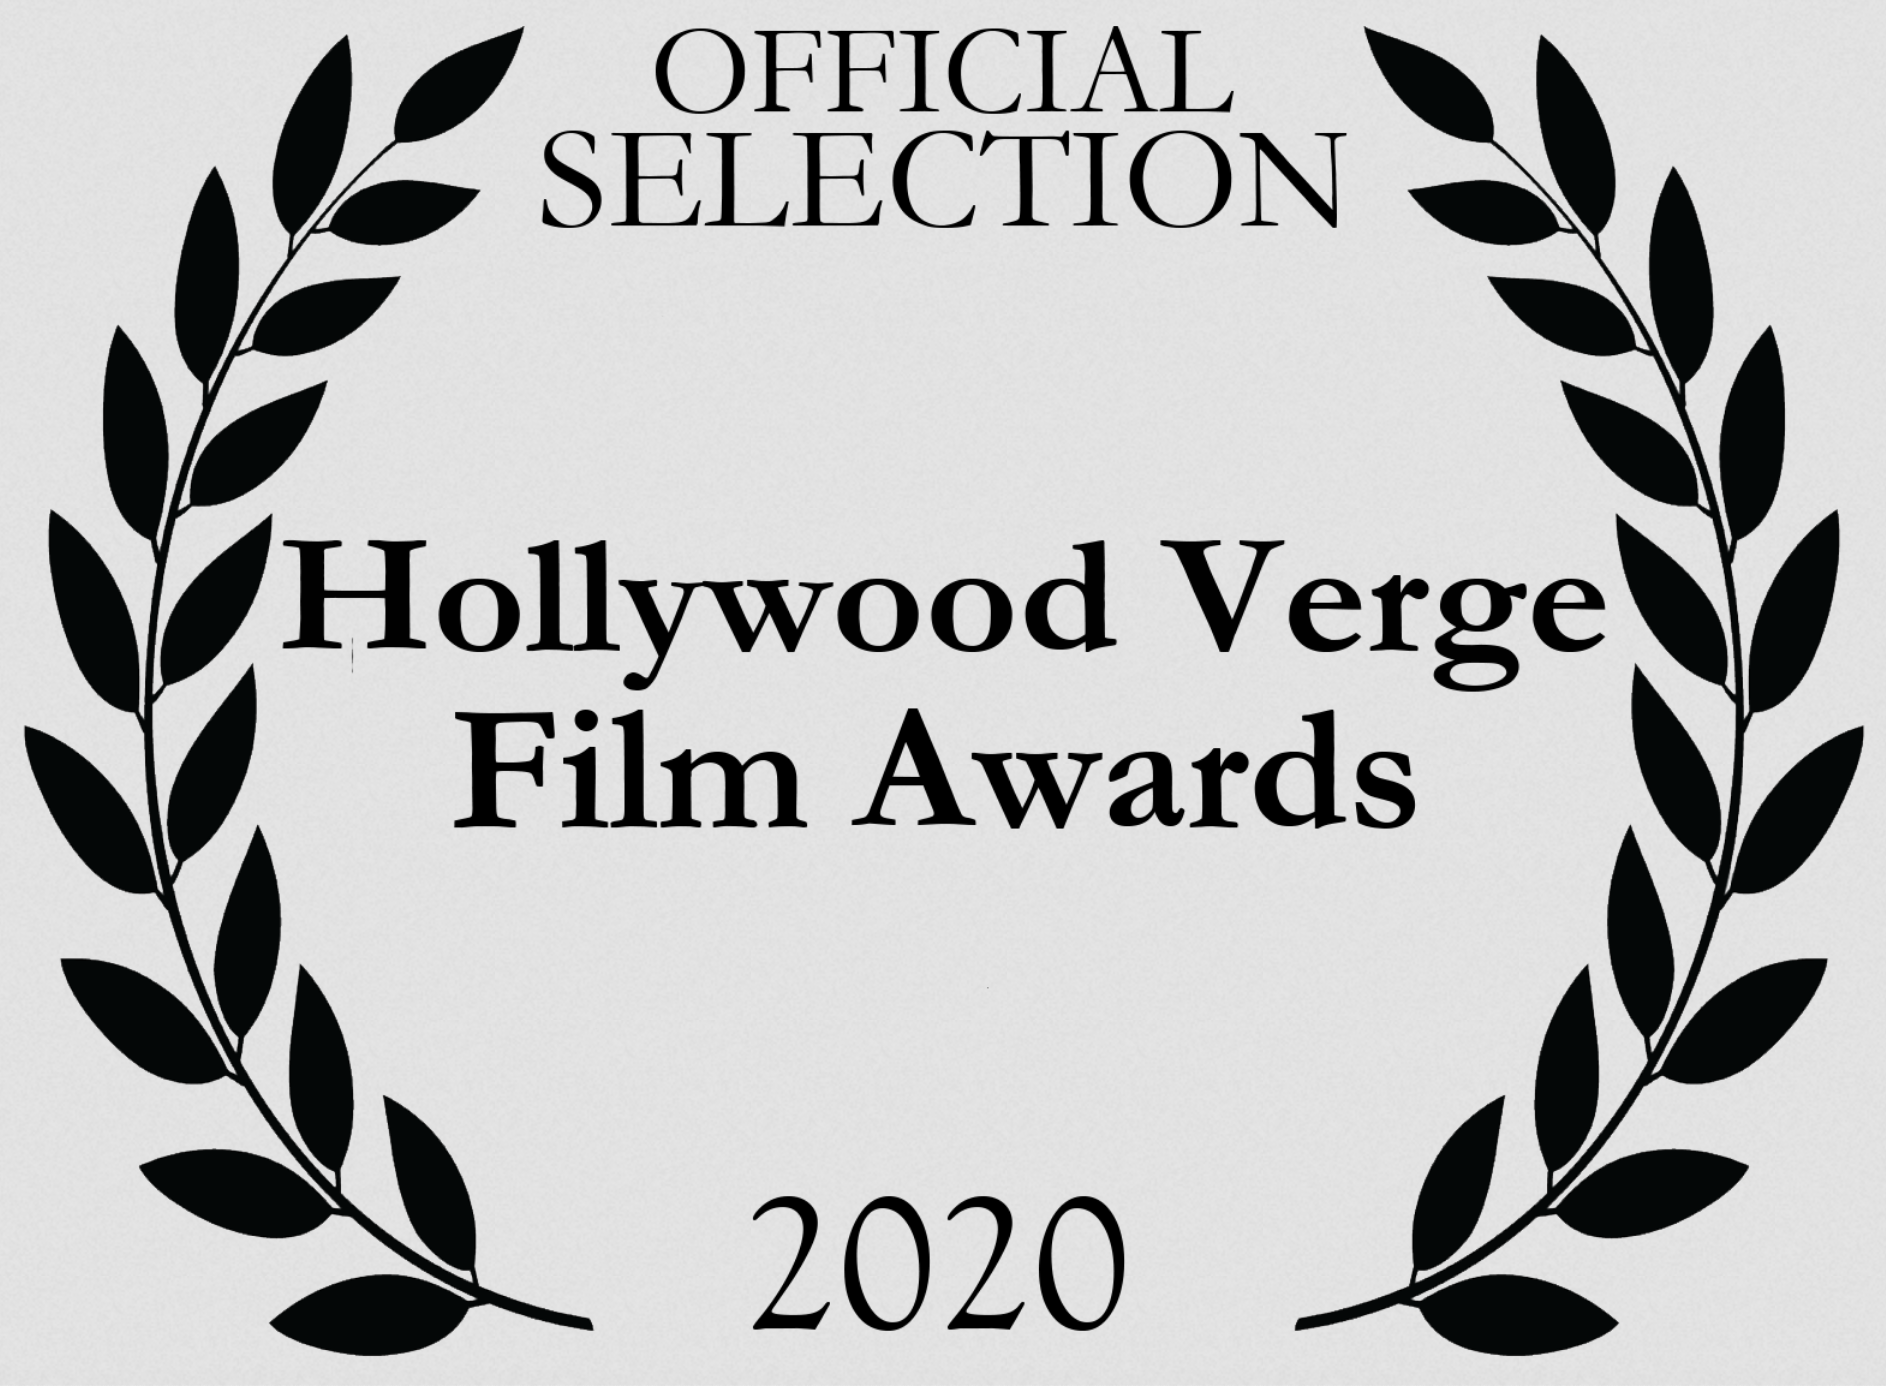 HollywoodVerge Off Sel